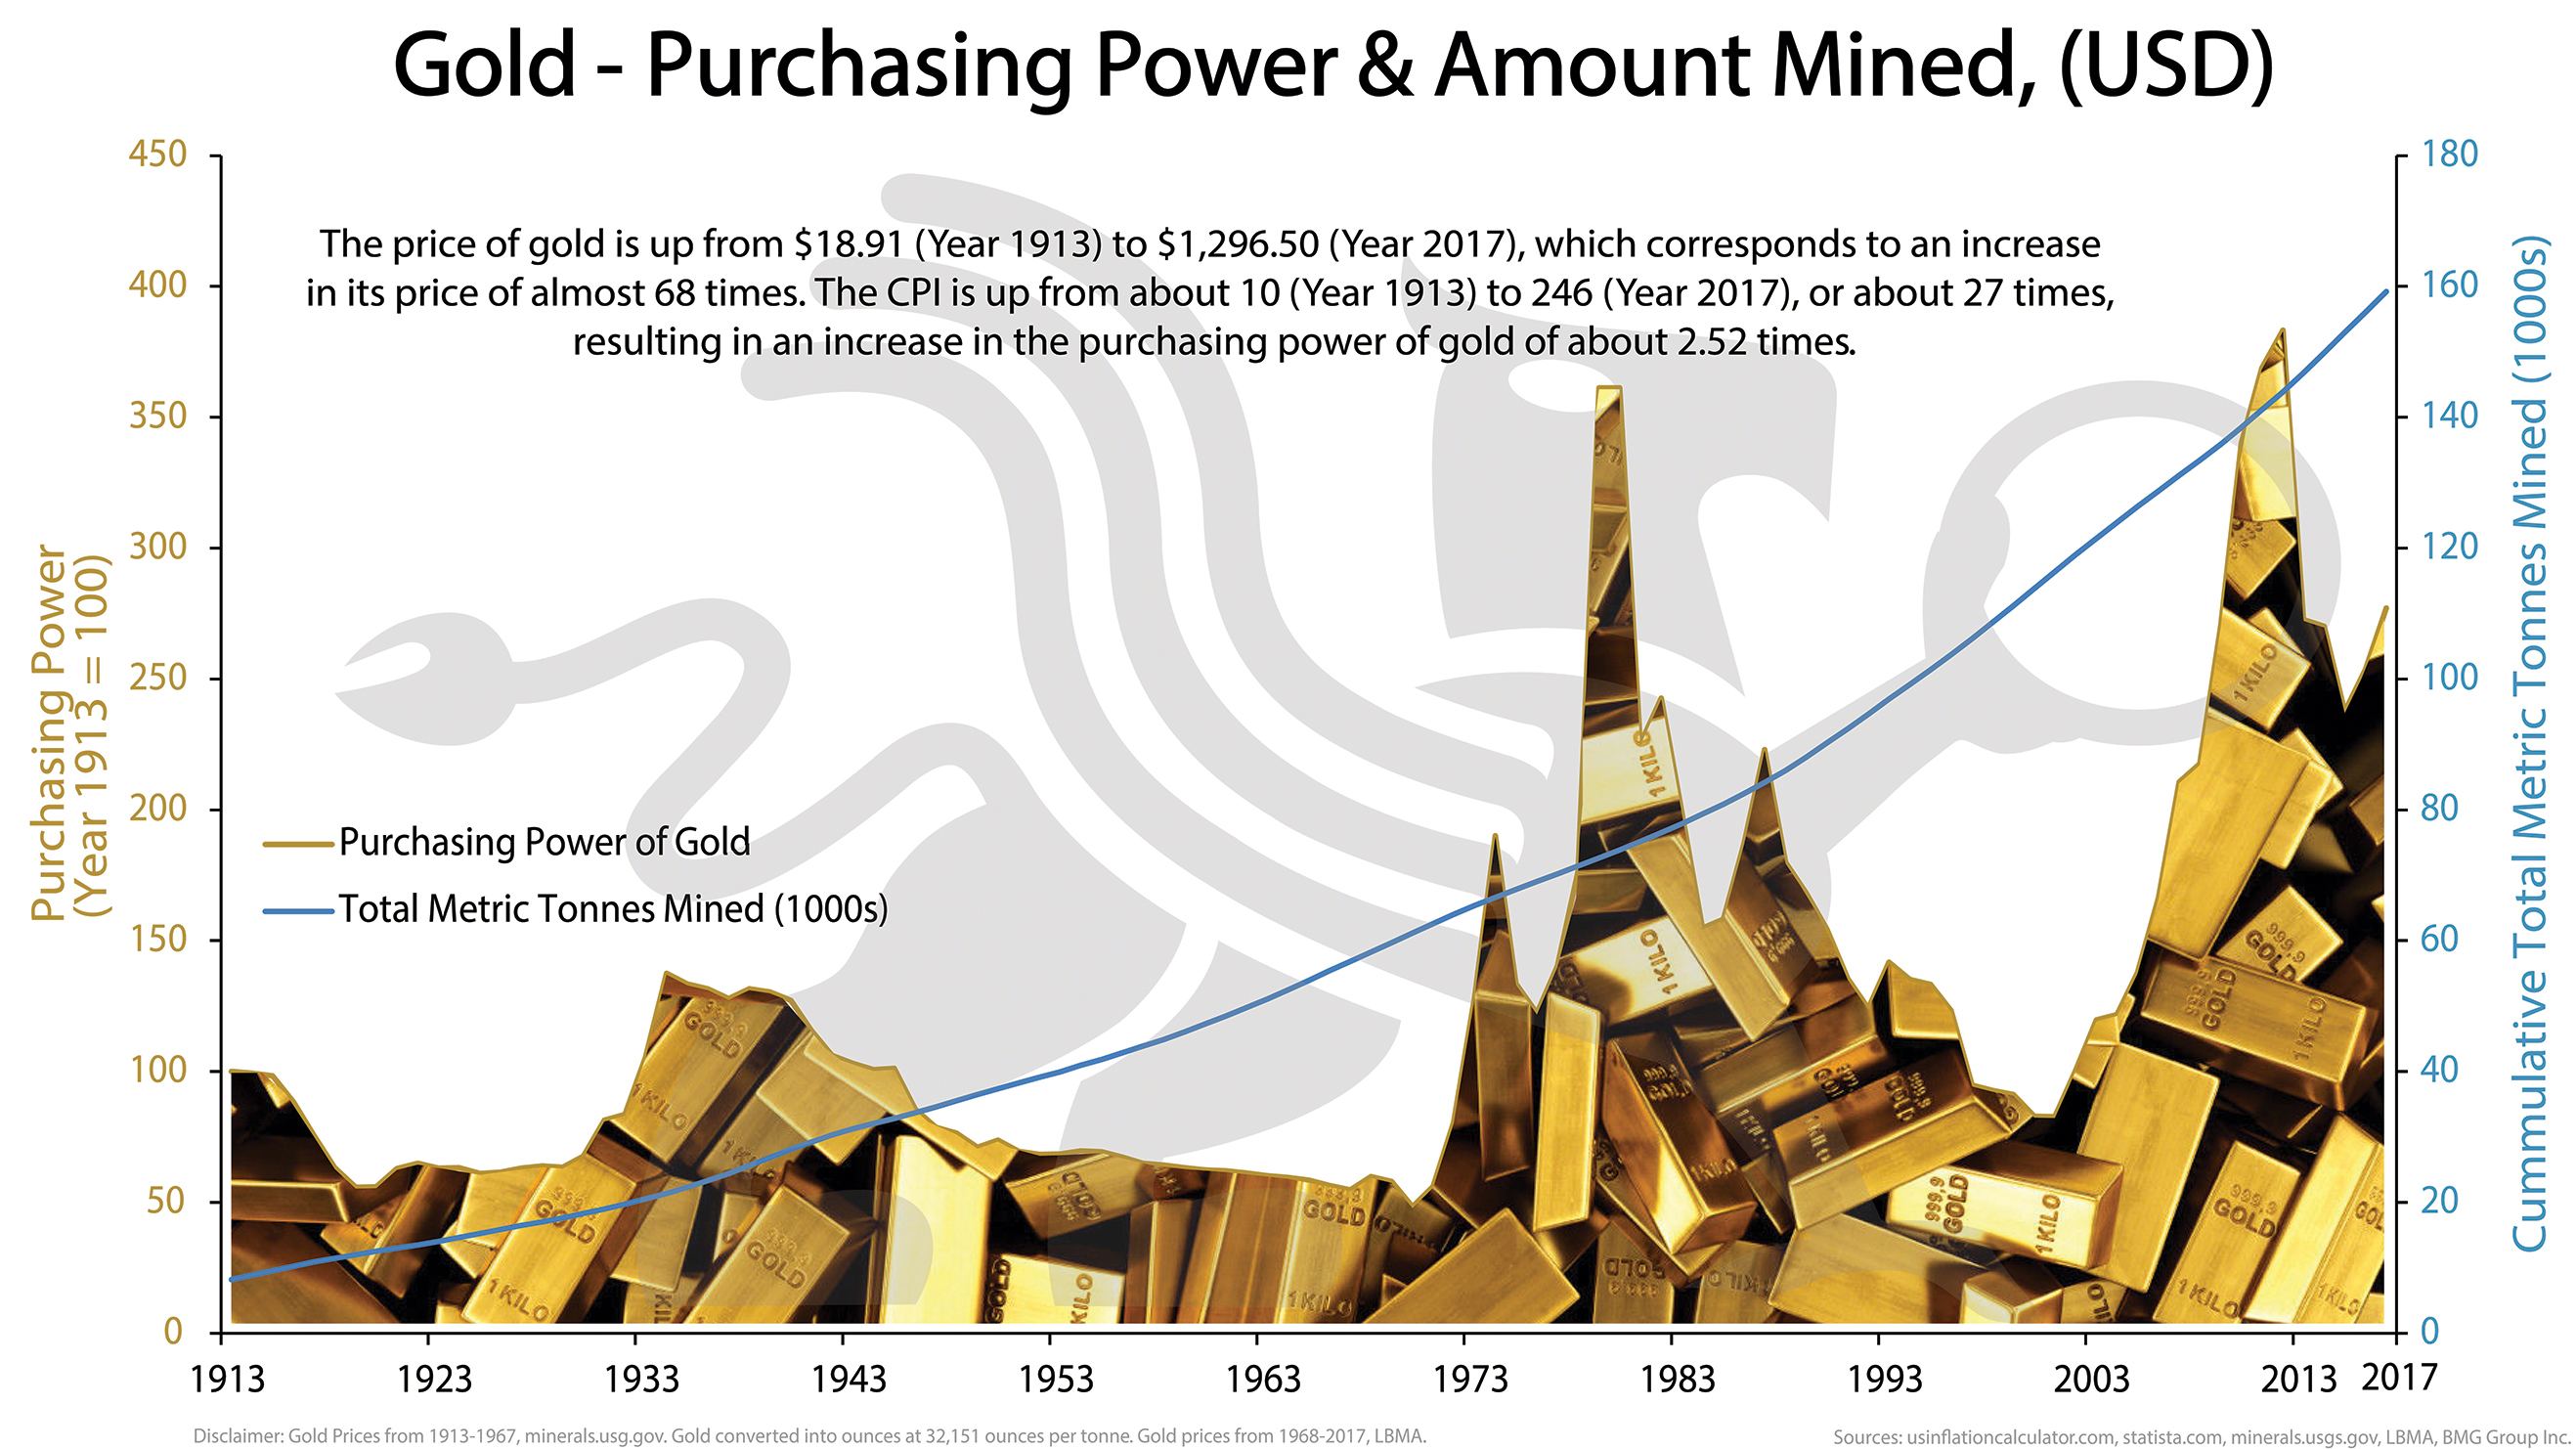 Gold - Purchasing Power & Amount Mined, (USD) | BullionBuzz Chart of the Week